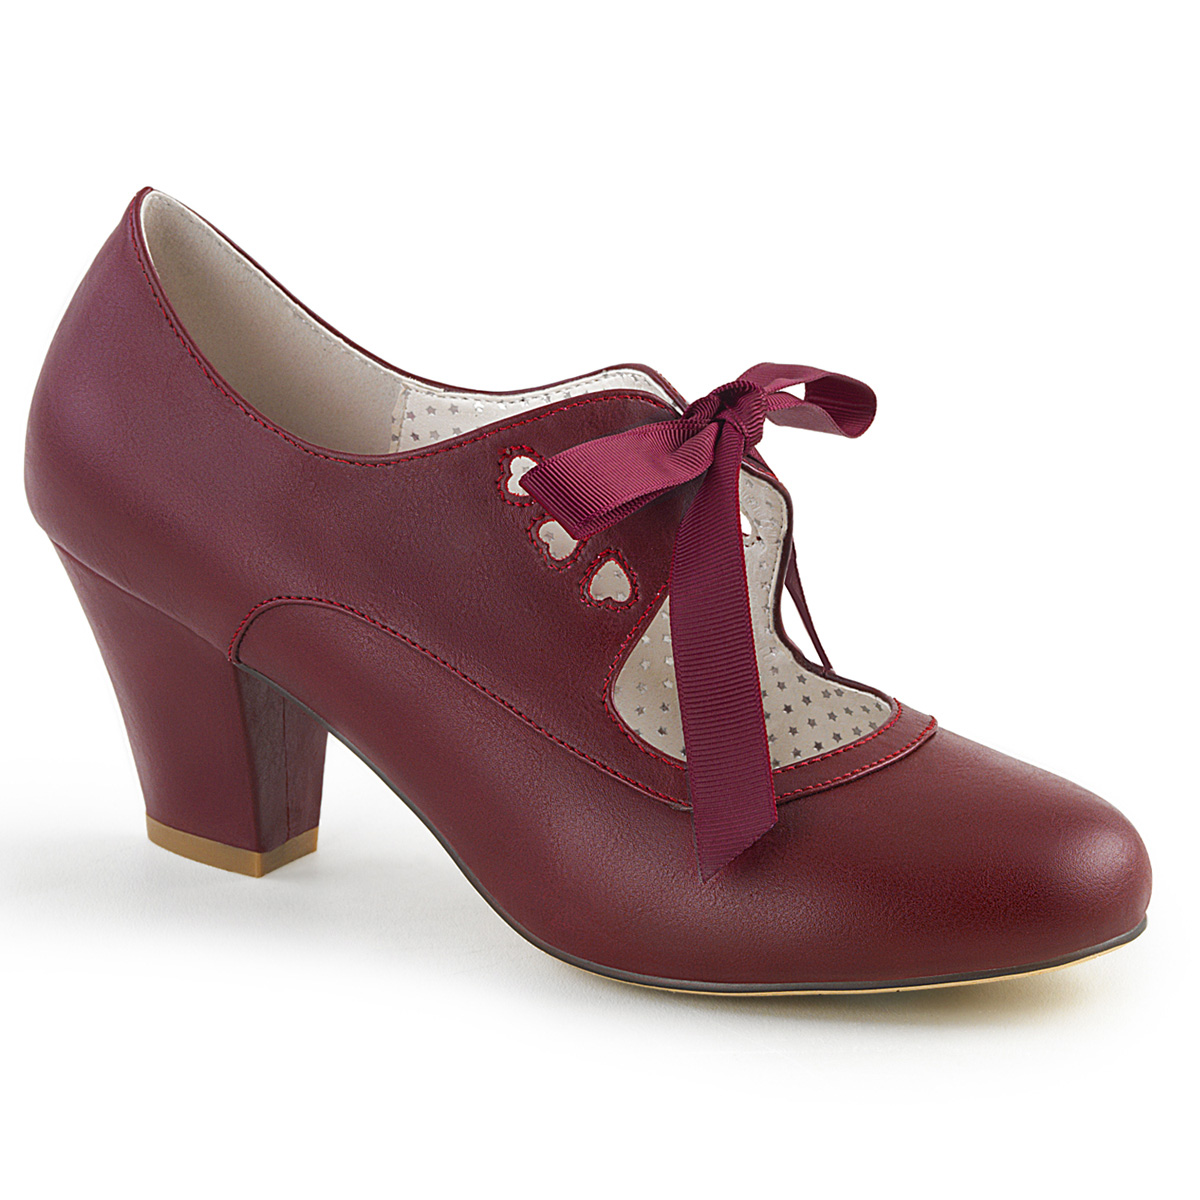 Wiggle 32 2 1 2'' Cuben Heel Mary by Jane Pump Schuhes by Mary PleaserUSA Größe 3a72f1